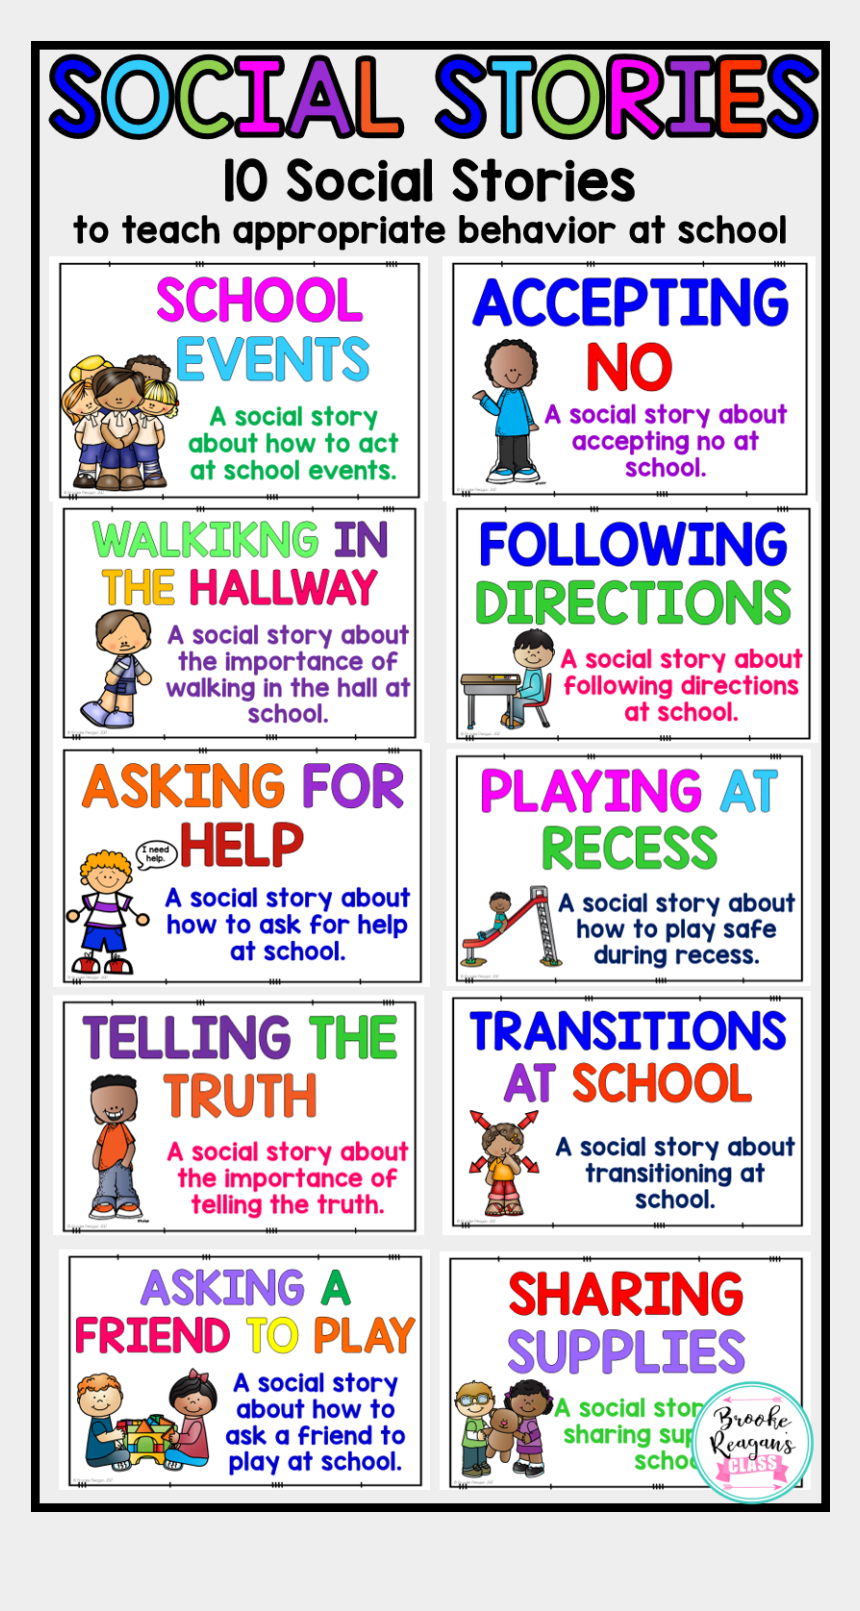 aba therapy clipart, Cartoons - 10 Social Stories To Teach Appropriate Behavior At - Social Story Appropriate Behavior